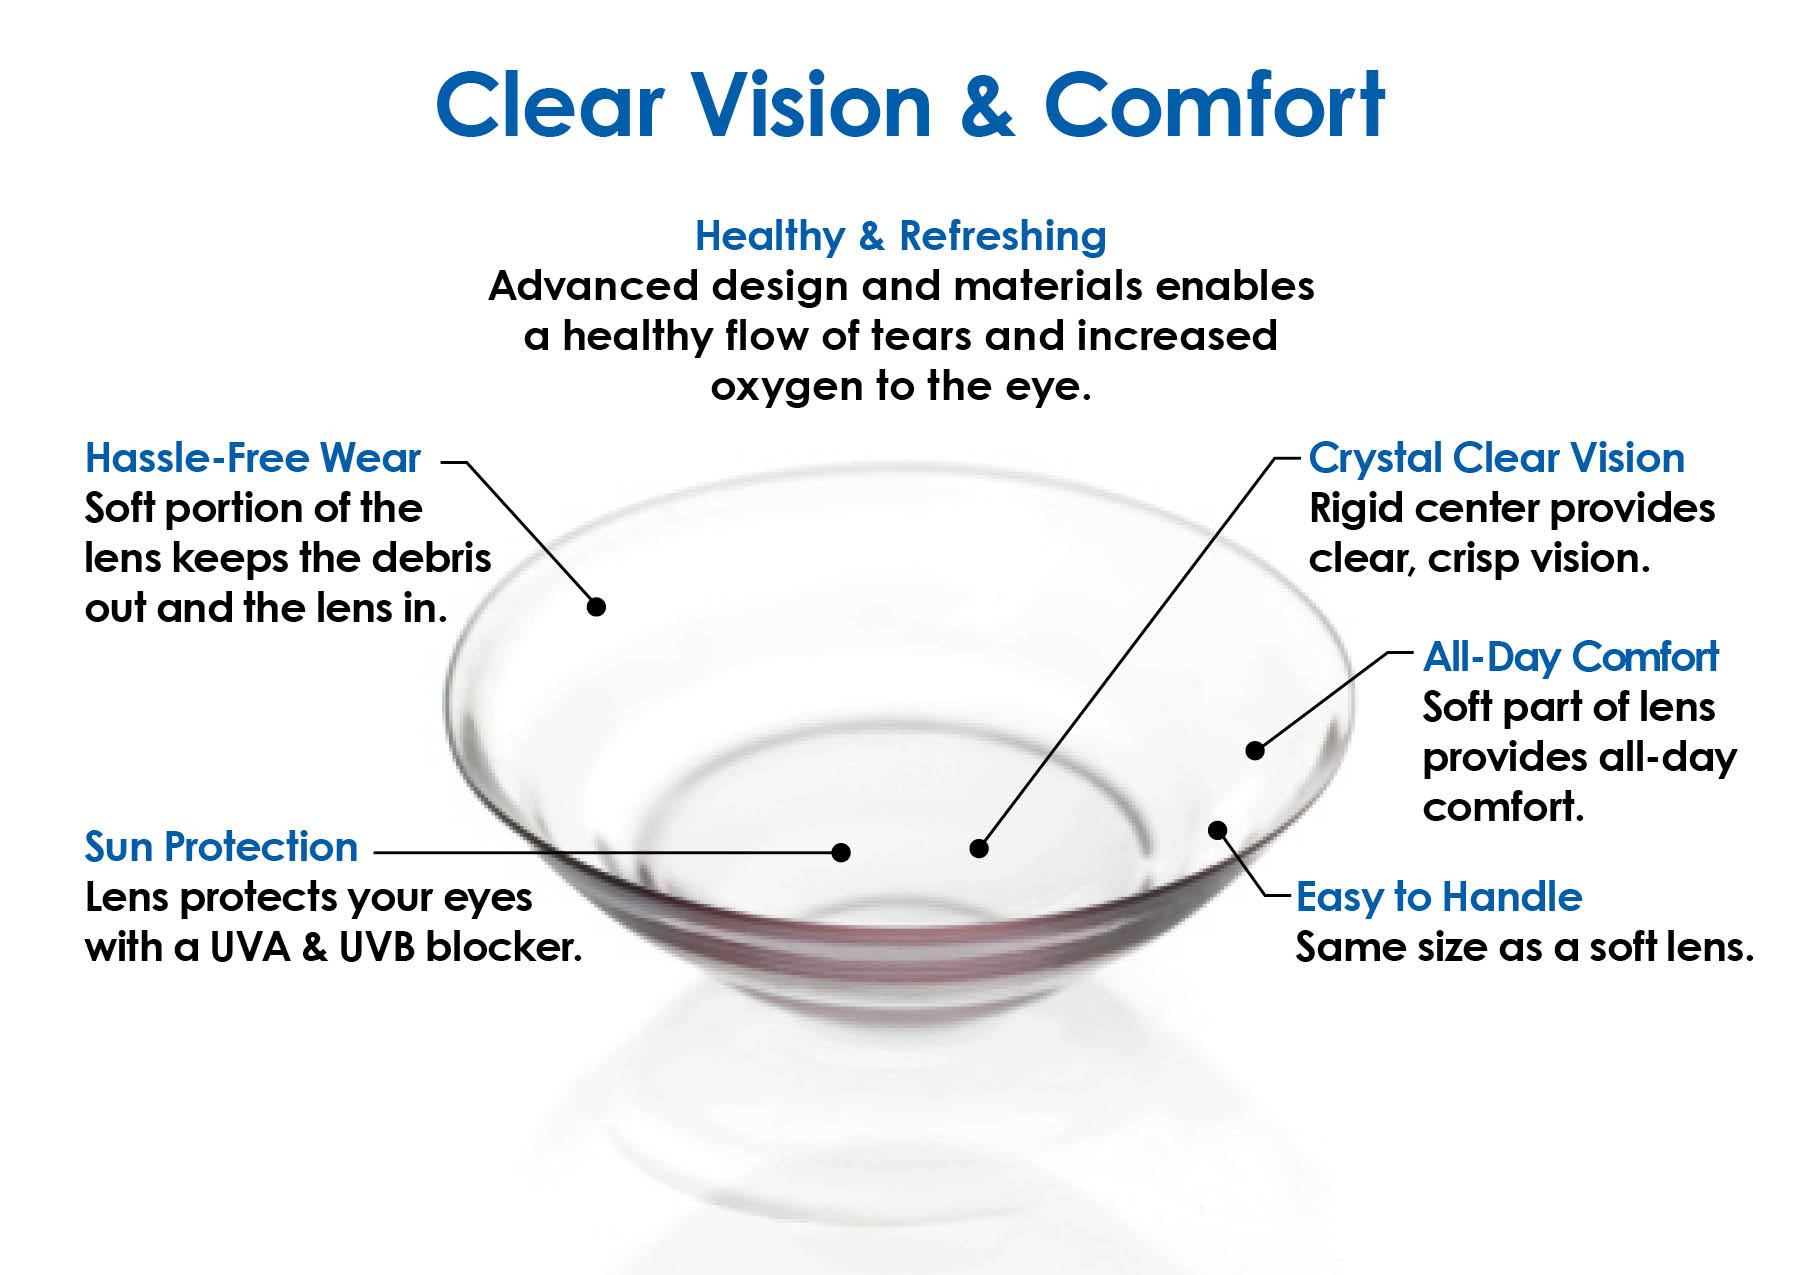 UltraHealth_Hybrid Lens_Clear Vision and Comfort Graphic.jpg